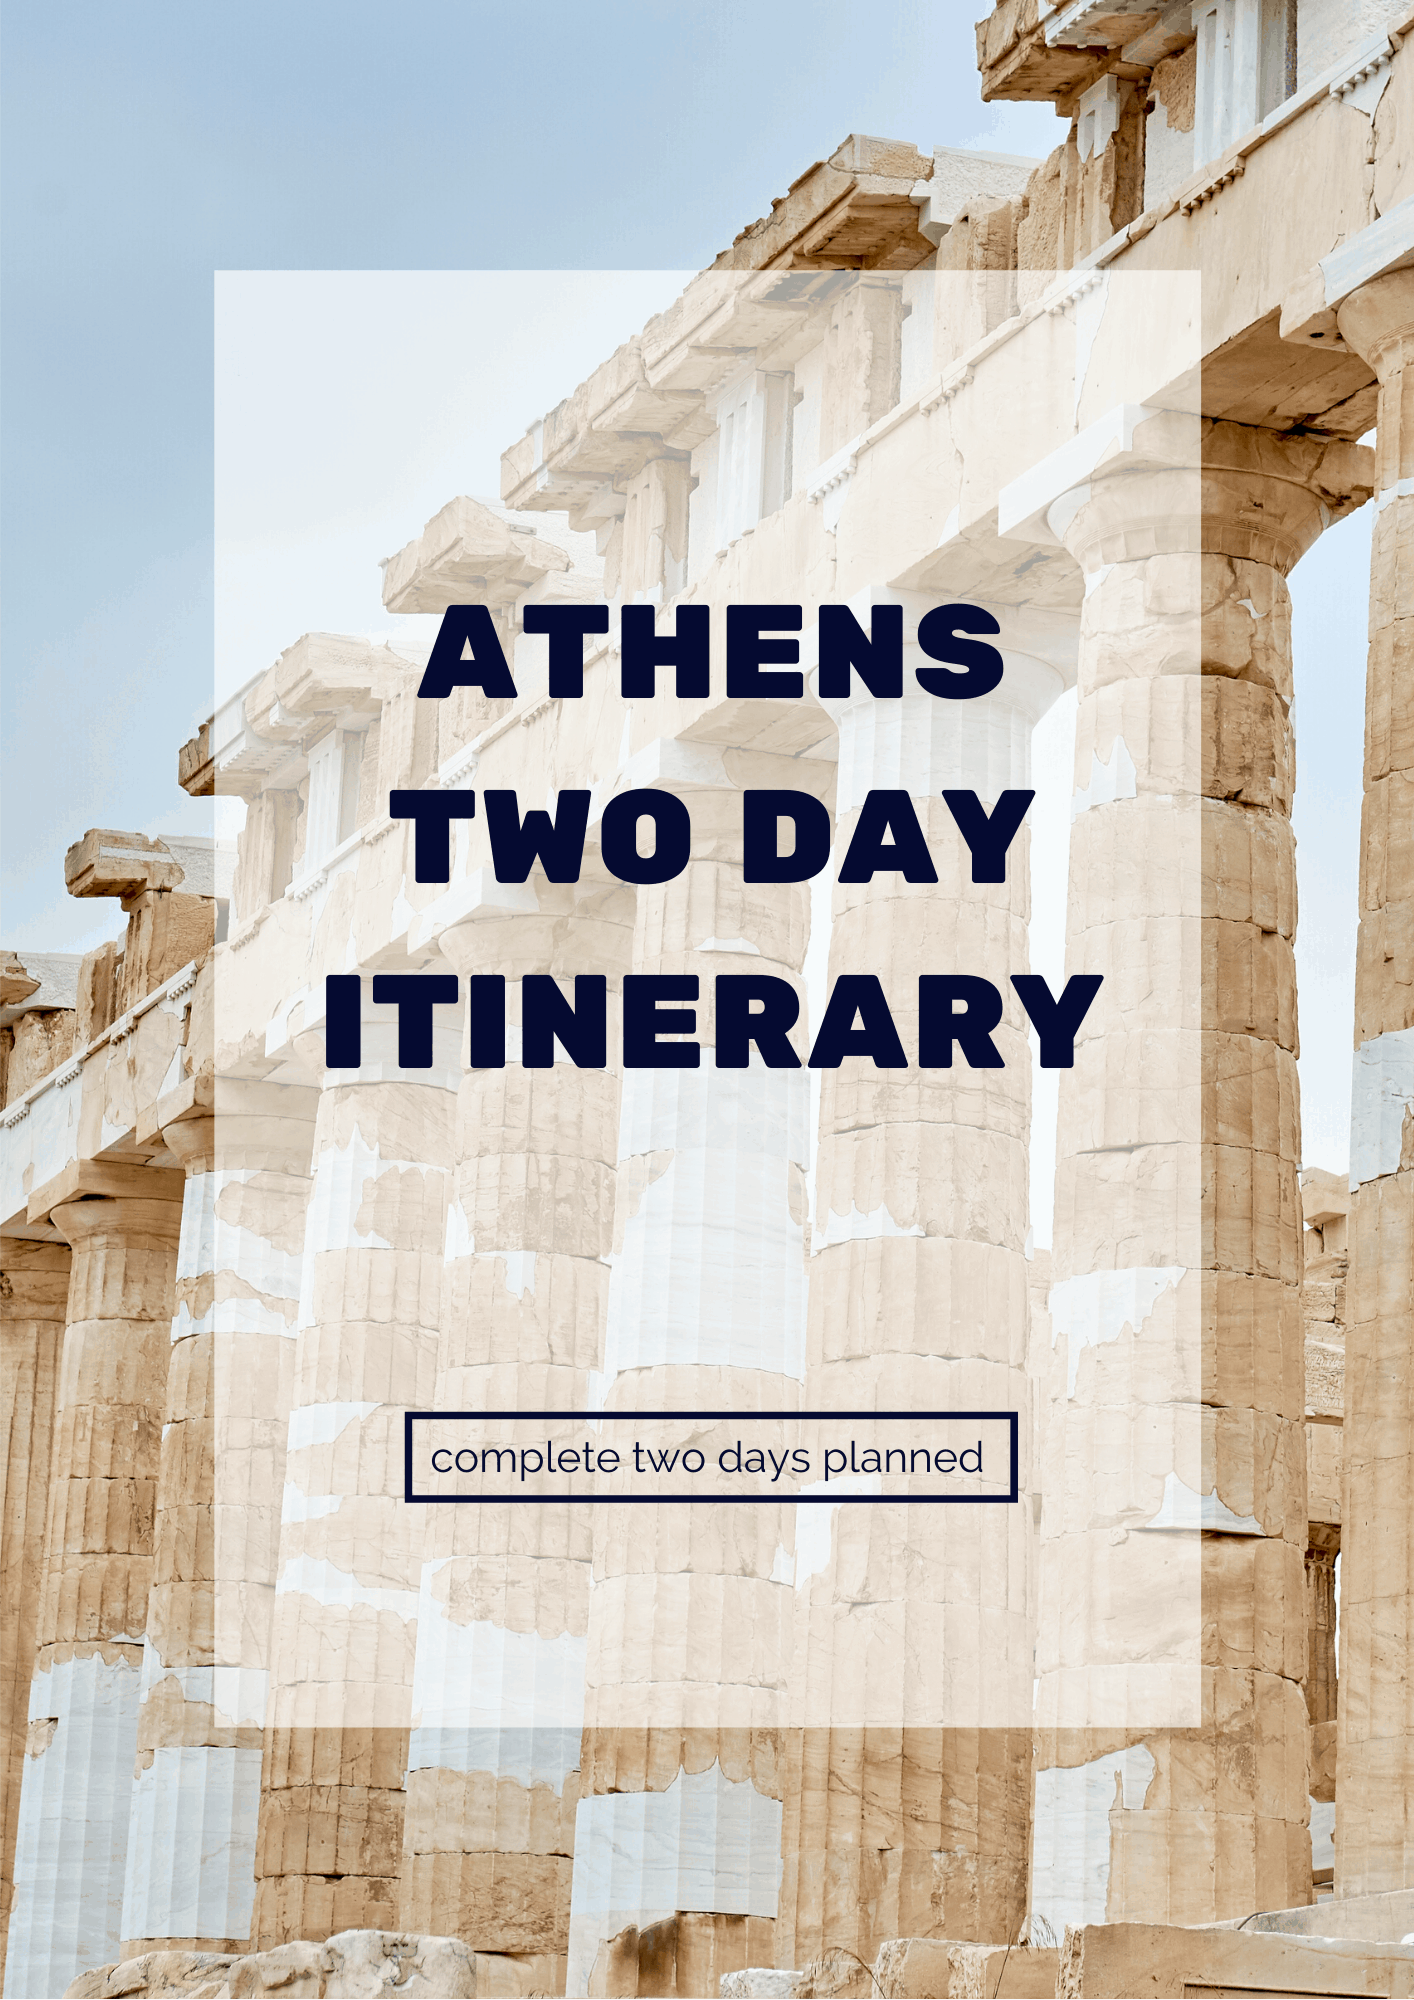 Athens Two Day Itinerary 2019